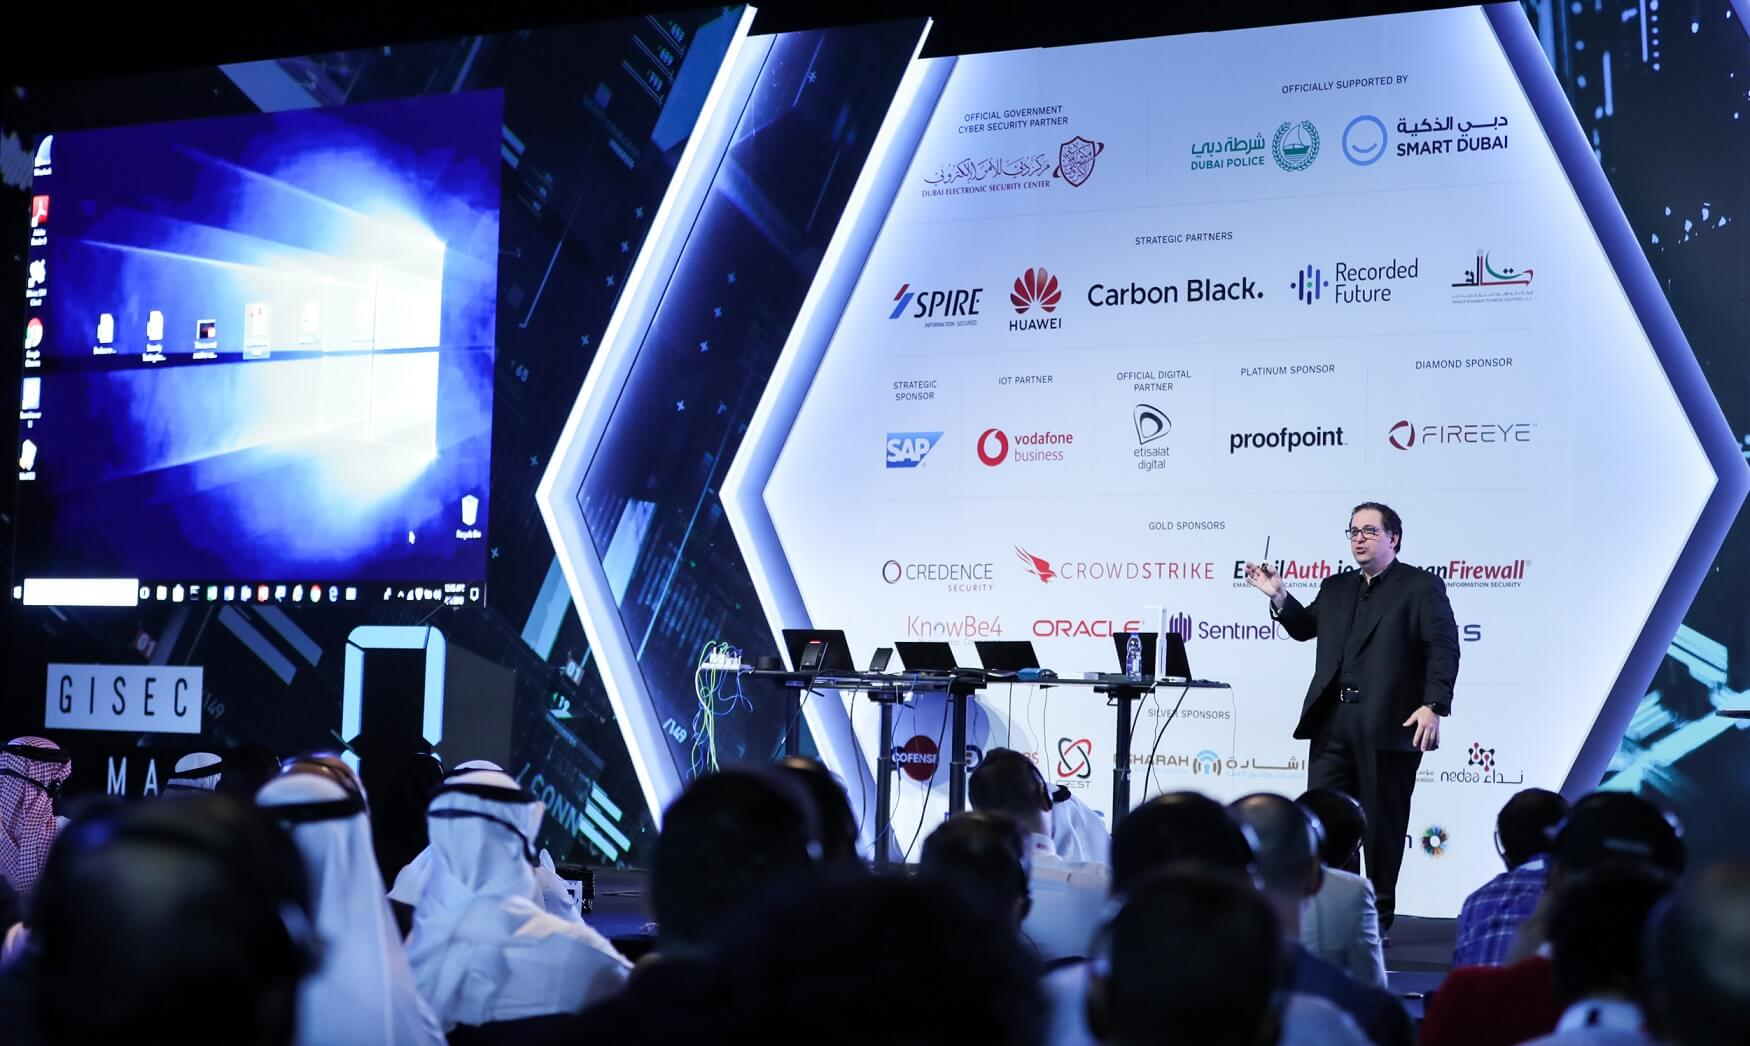 Mr. Kevin Mitnick, one of the world's most famous hackers from the US addressing the audience at the sidelines of the Gulf Information Security Expo and Conference. (COURTESY PHOTO)